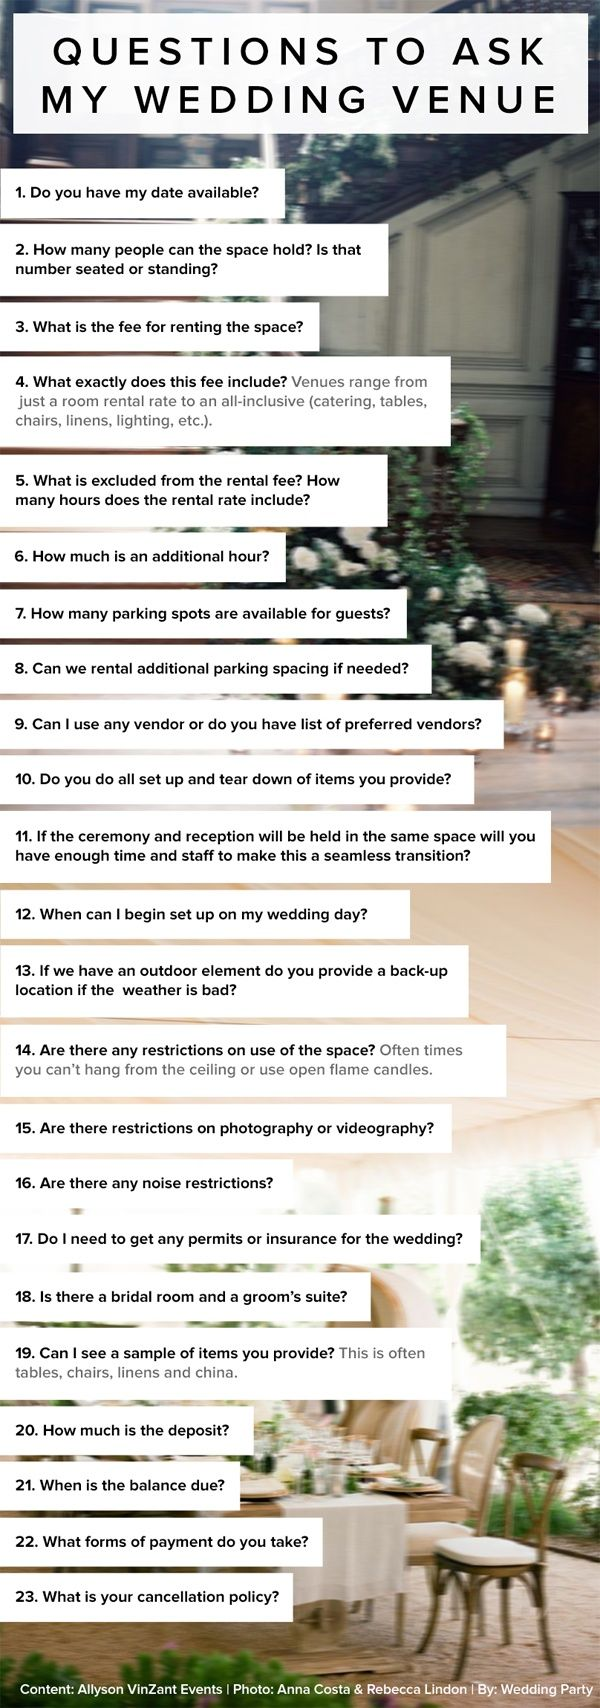 ErichMcVey So you've picked a wedding date and you've started to visualize your perfect day, but you're still missing a huge part: the wedding venue! Picking the perfect venues for your ceremony and reception are crucial to making your wedding day vision come together. Though choosing and booking the place aren't as always easy as …